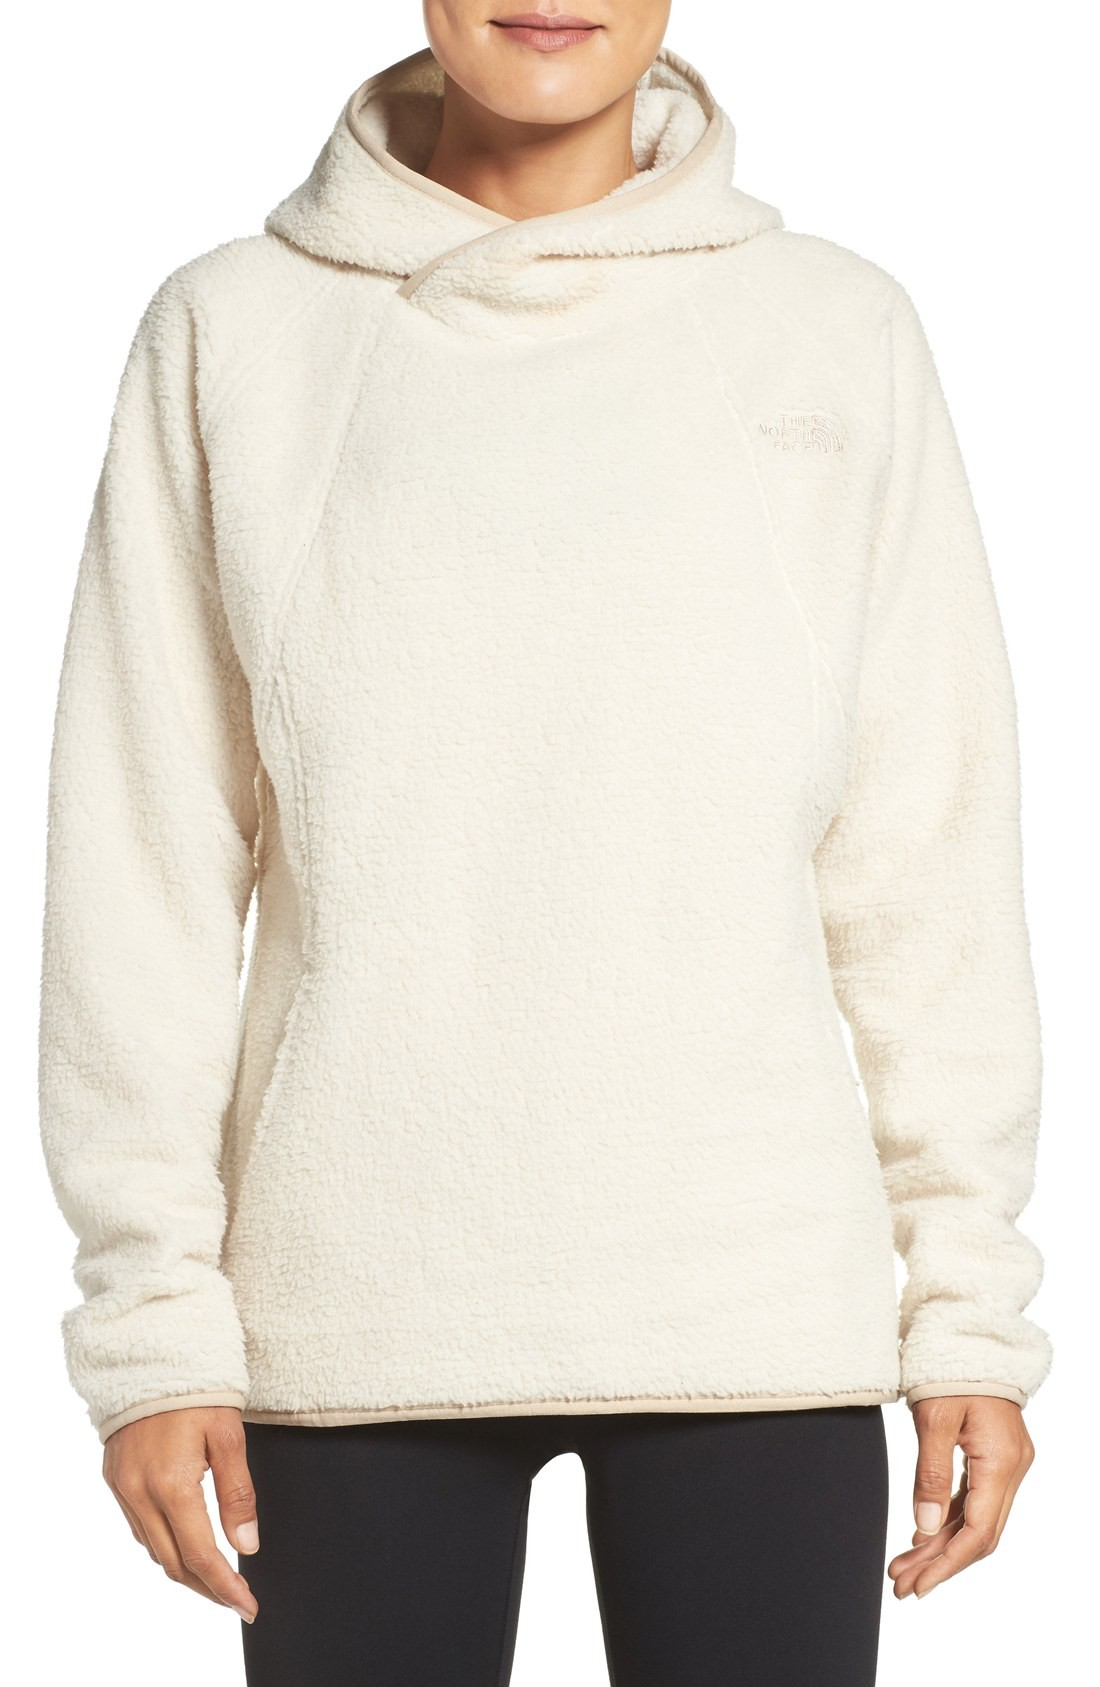 93c3a5ba97f 15 Cozy Sherpa-Inspired Pullovers - Kelly in the City